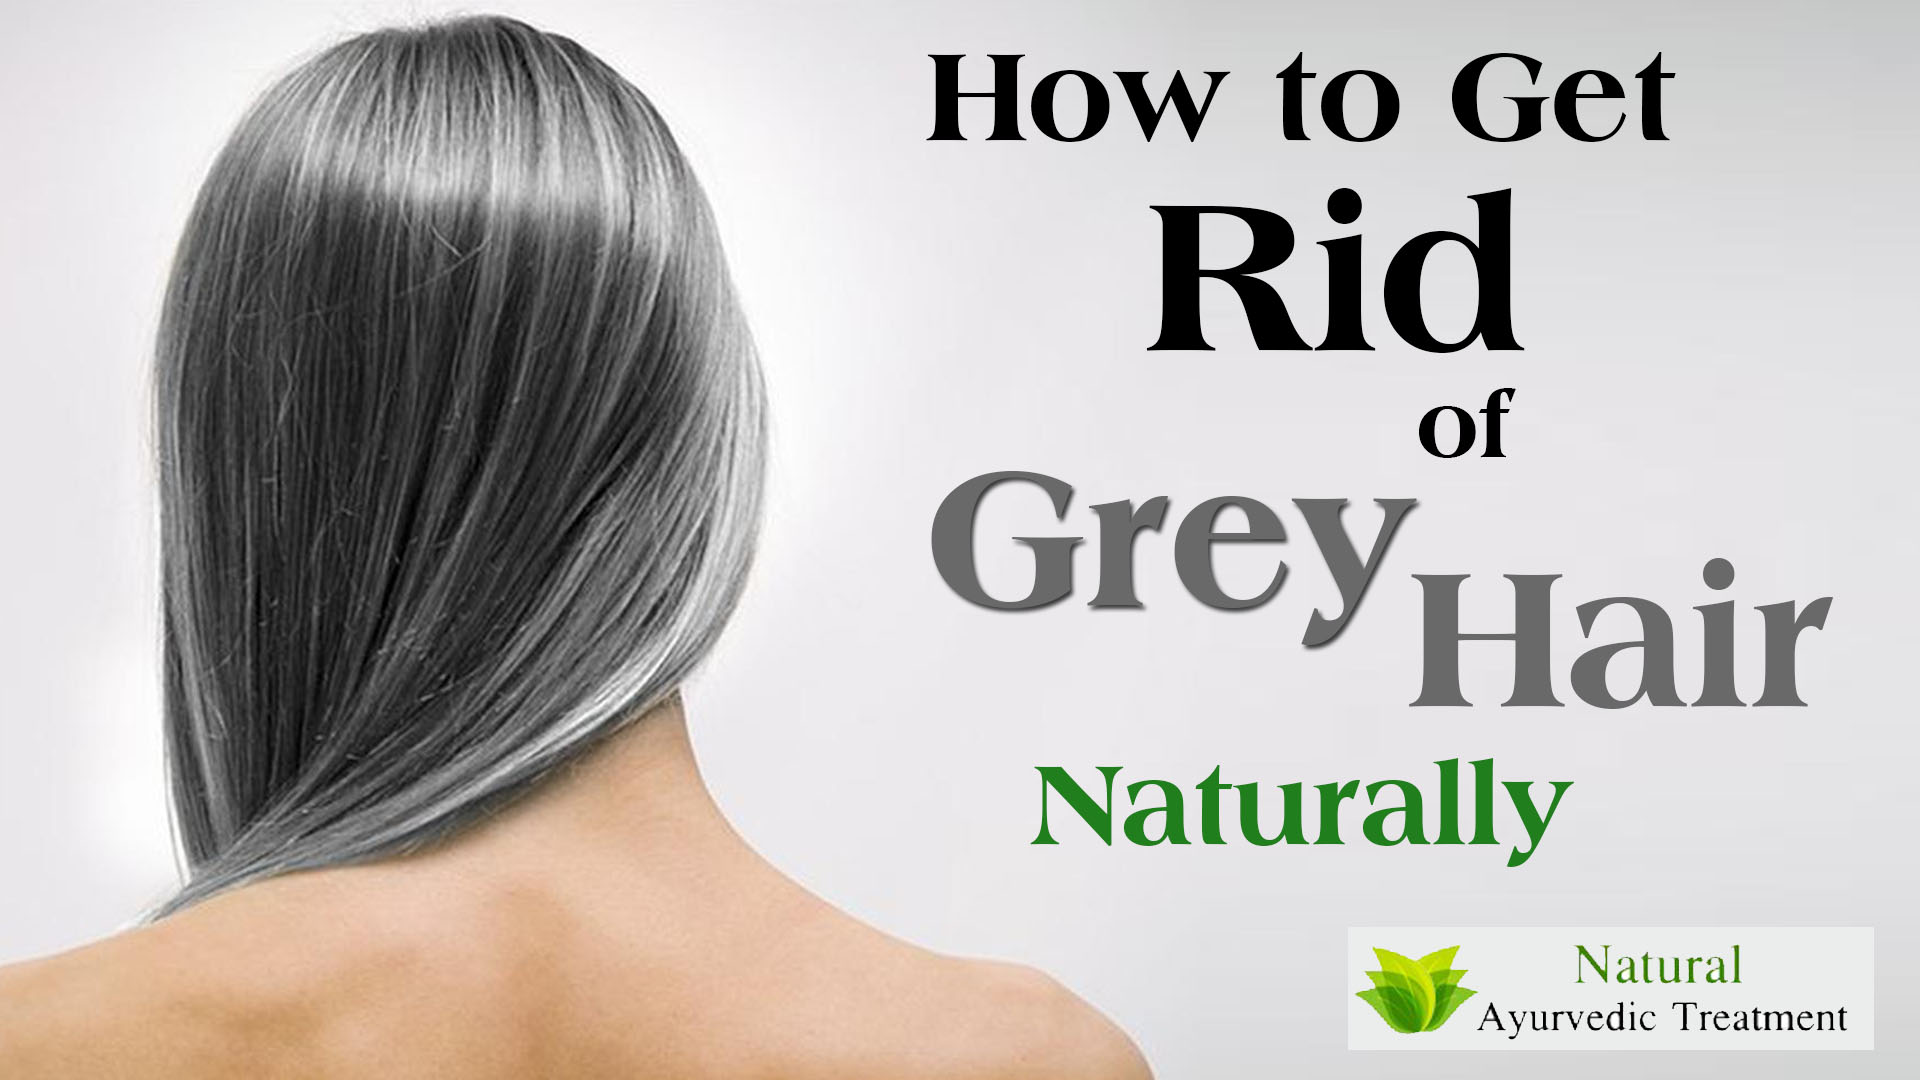 How to Get Rid of Grey Hair Naturally?